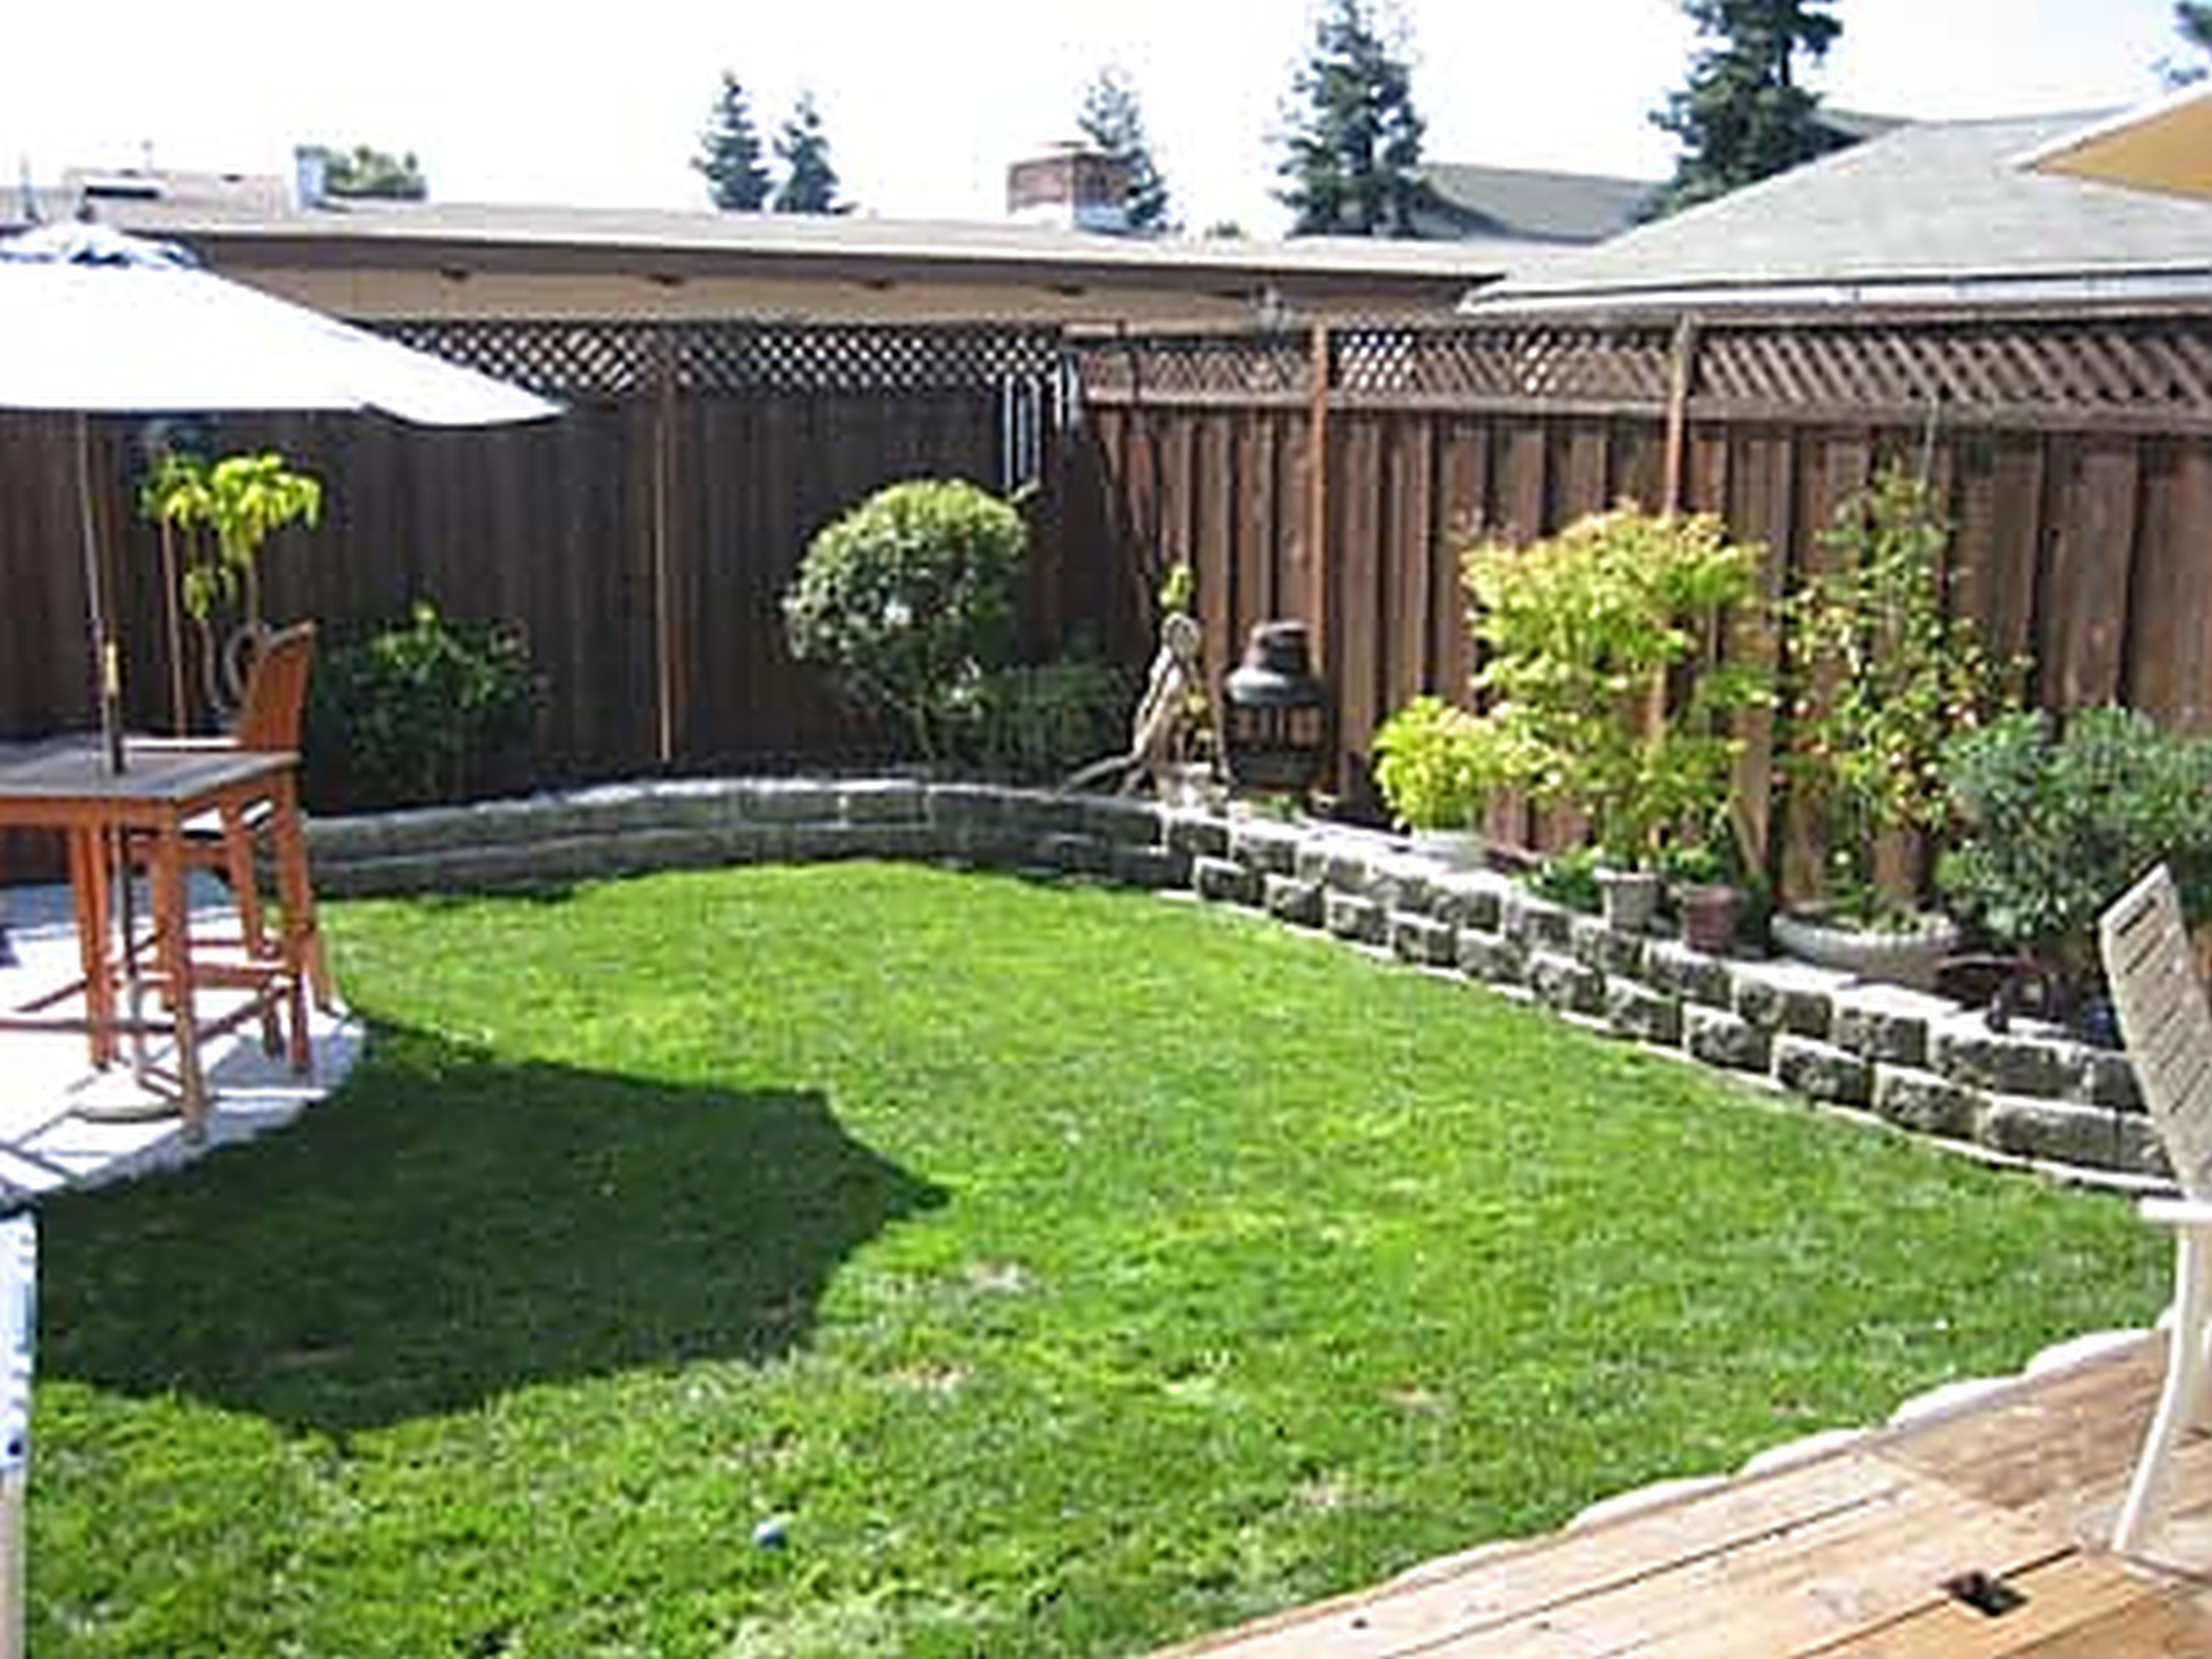 Outstanding Landscape Design For Small Backyards Sard Info regarding Small Backyard Landscape Design